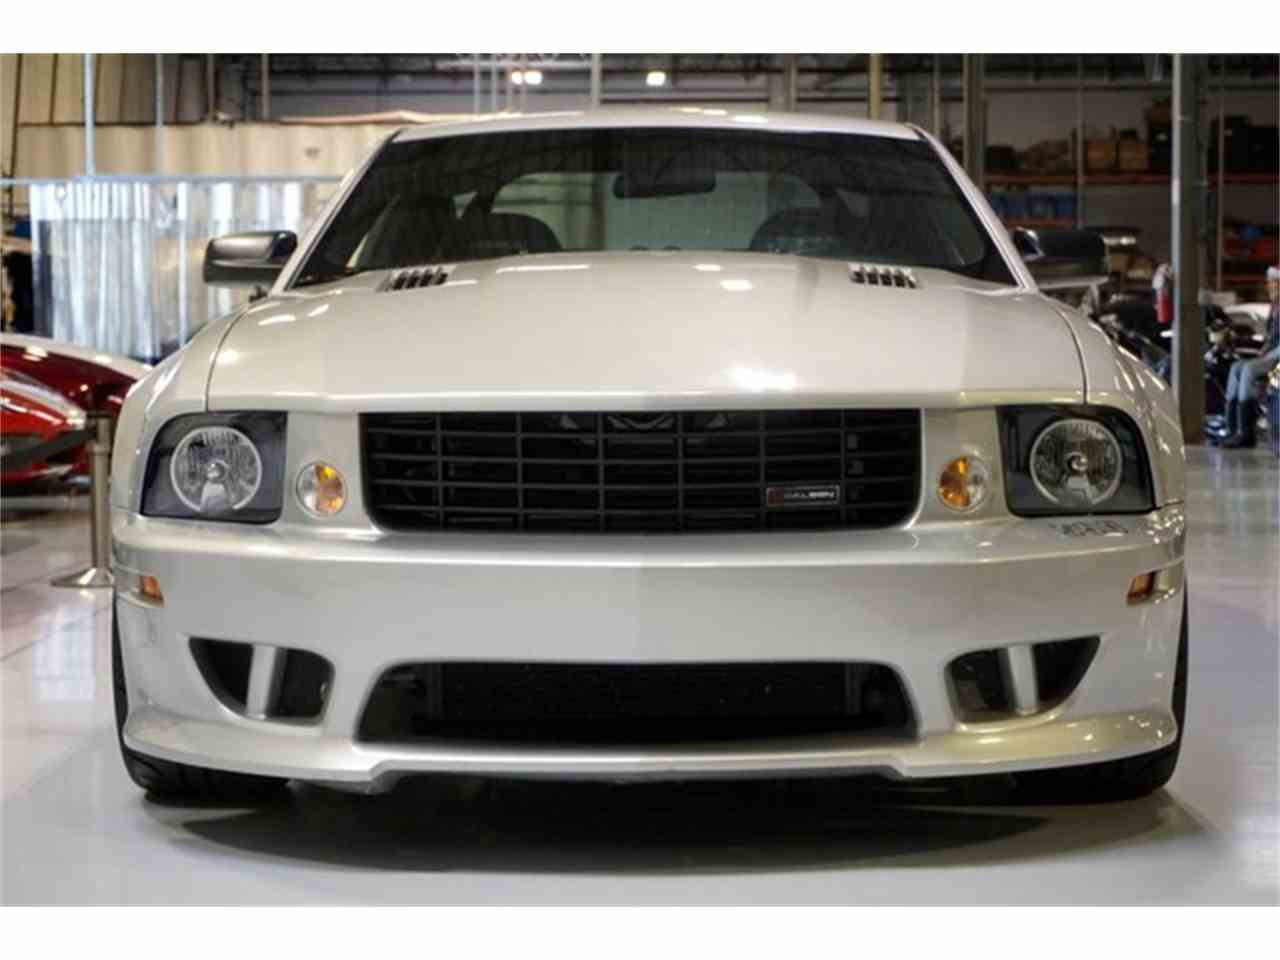 Large Picture of '06 Ford Mustang located in Solon Ohio - $33,990.00 Offered by R&H Motor Car Group - JHI8